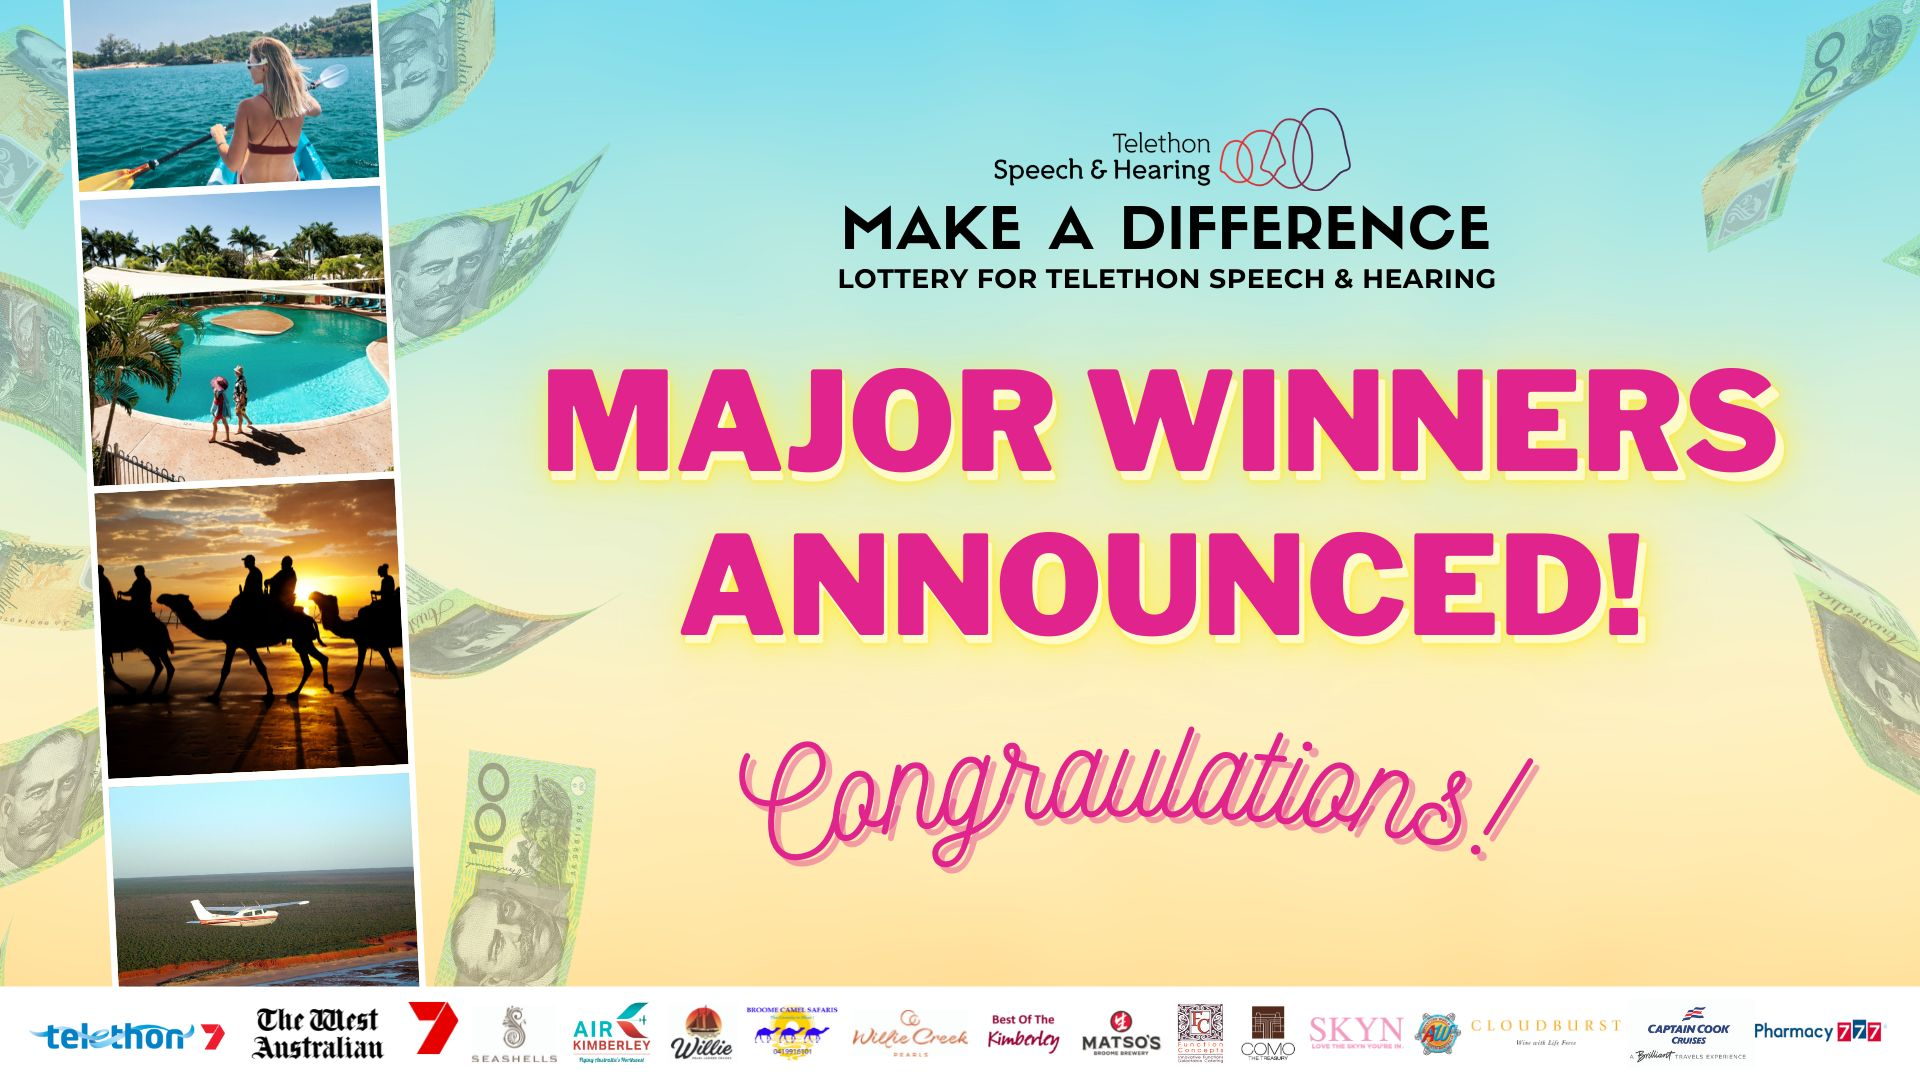 Make a Difference Lottery Winners